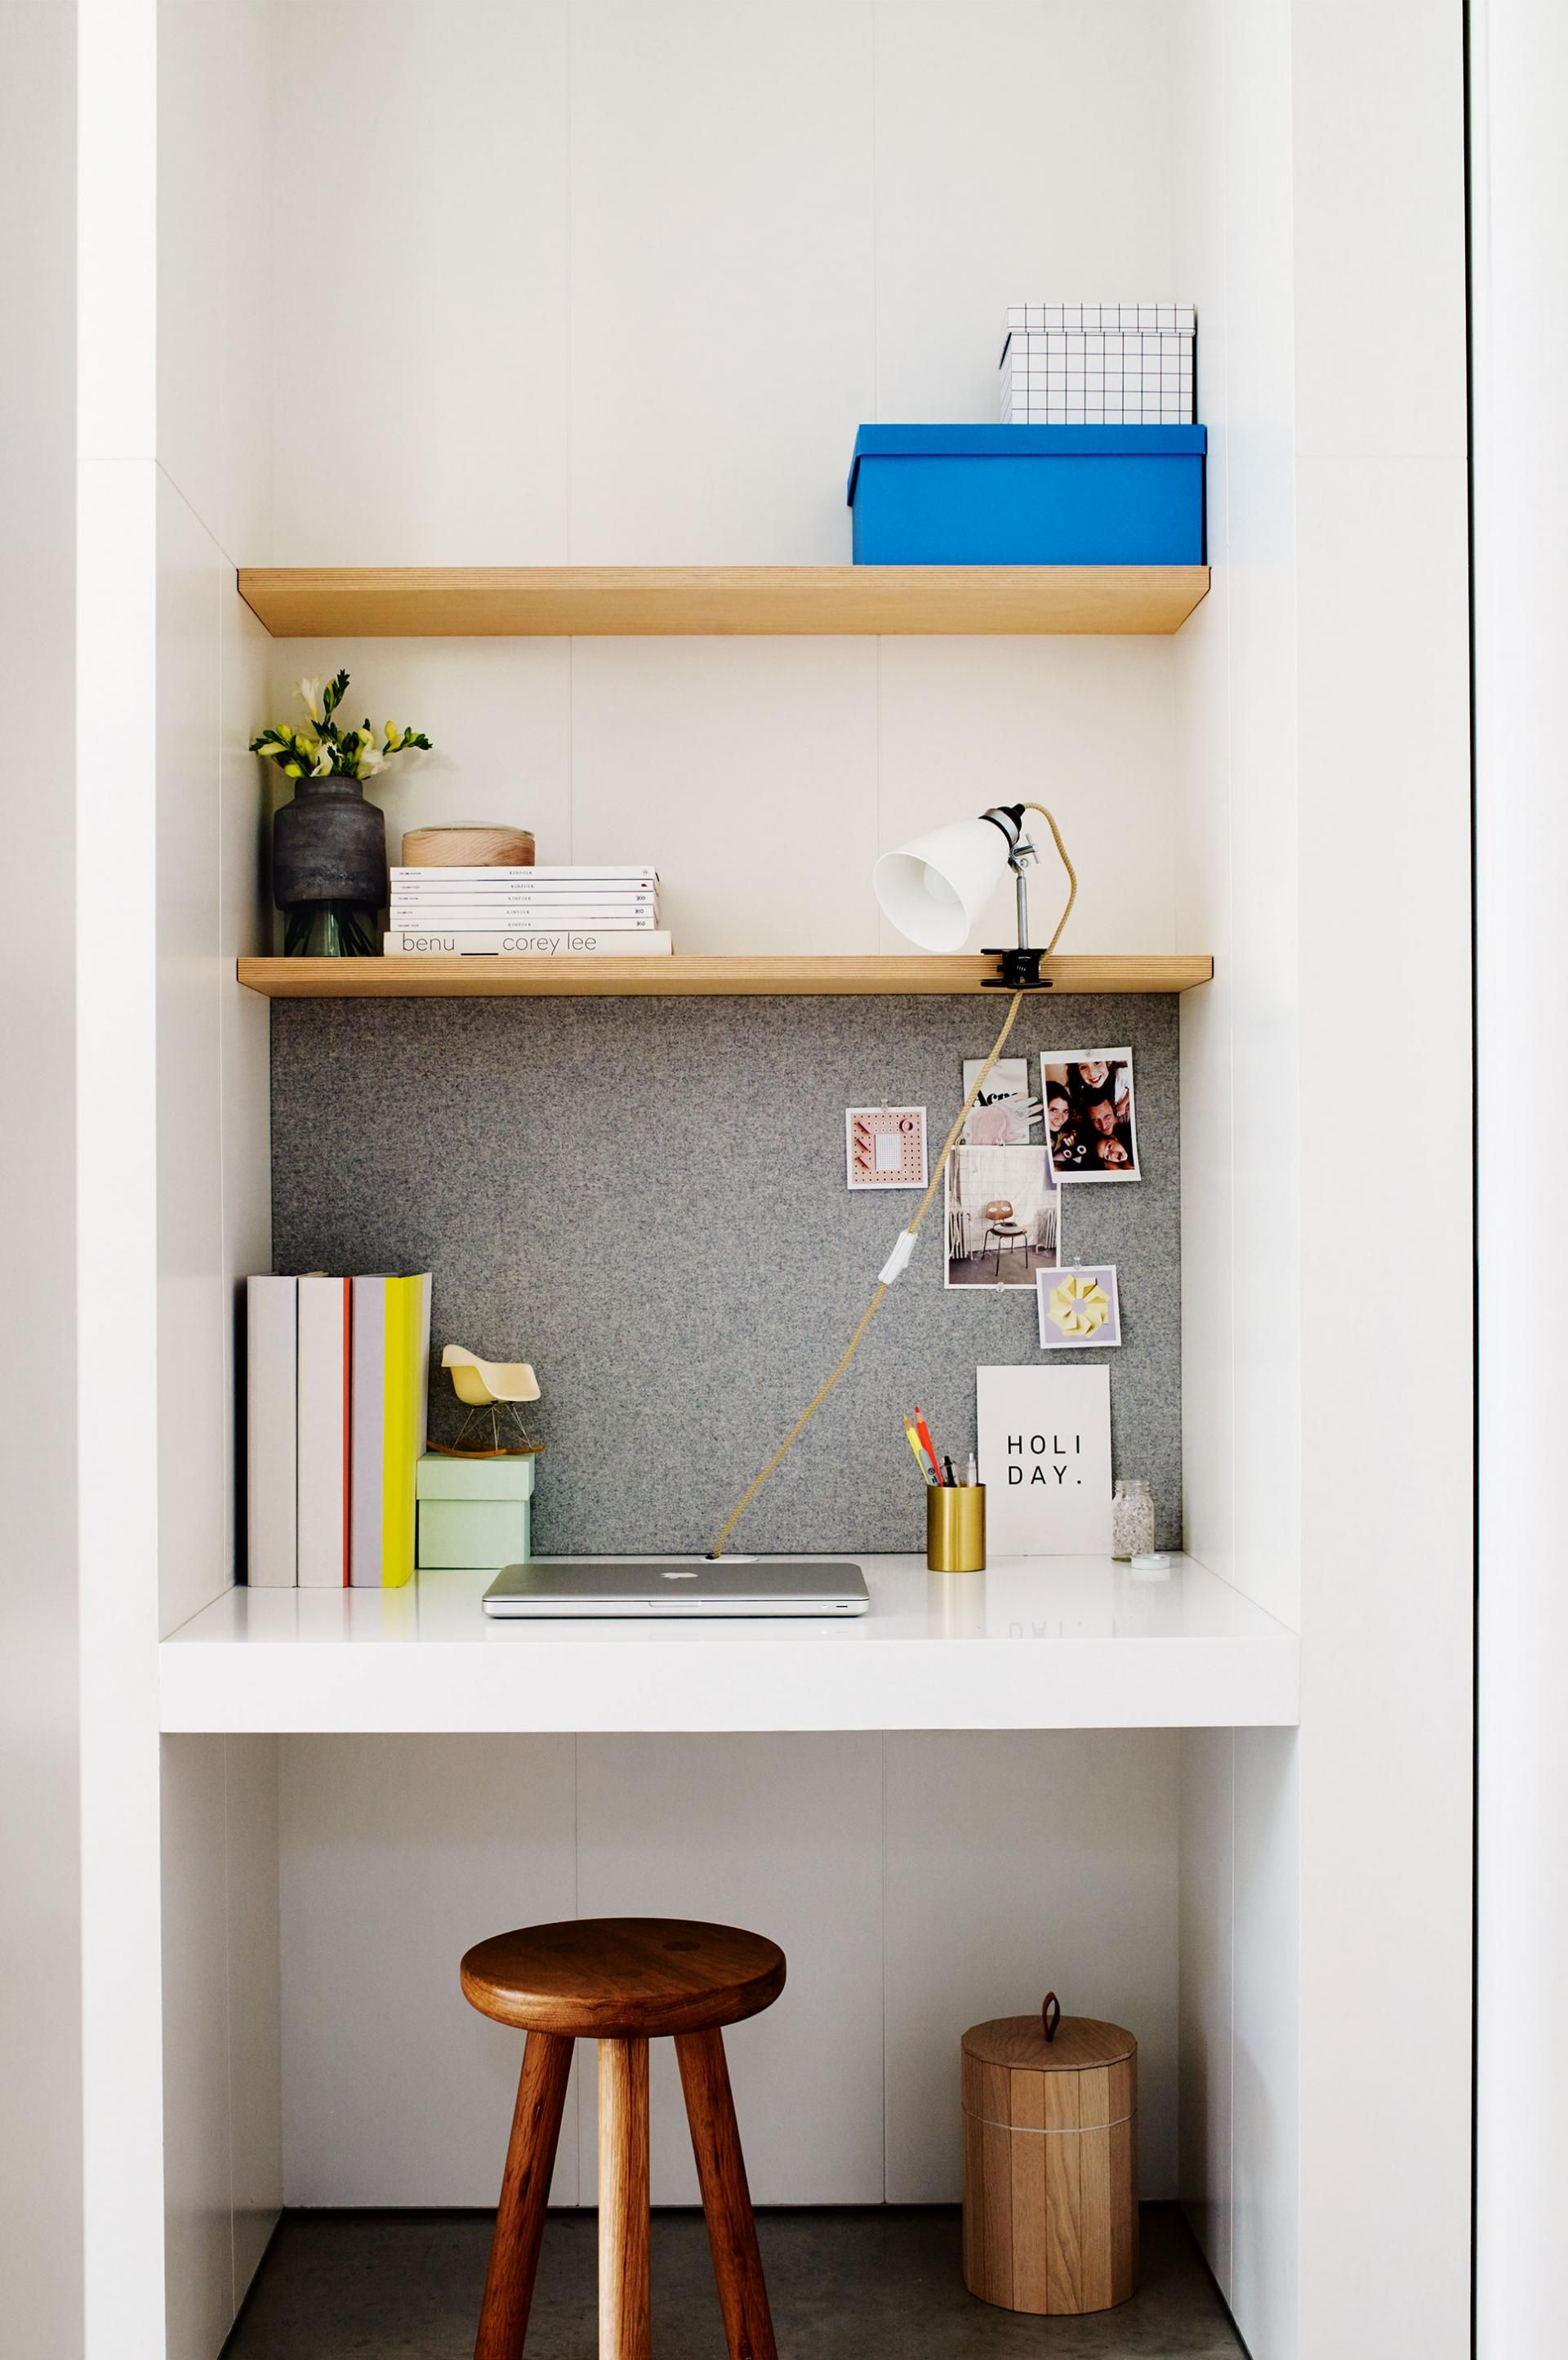 Study Room Storage: From The September 2015 Issue Of Inside Out Magazine